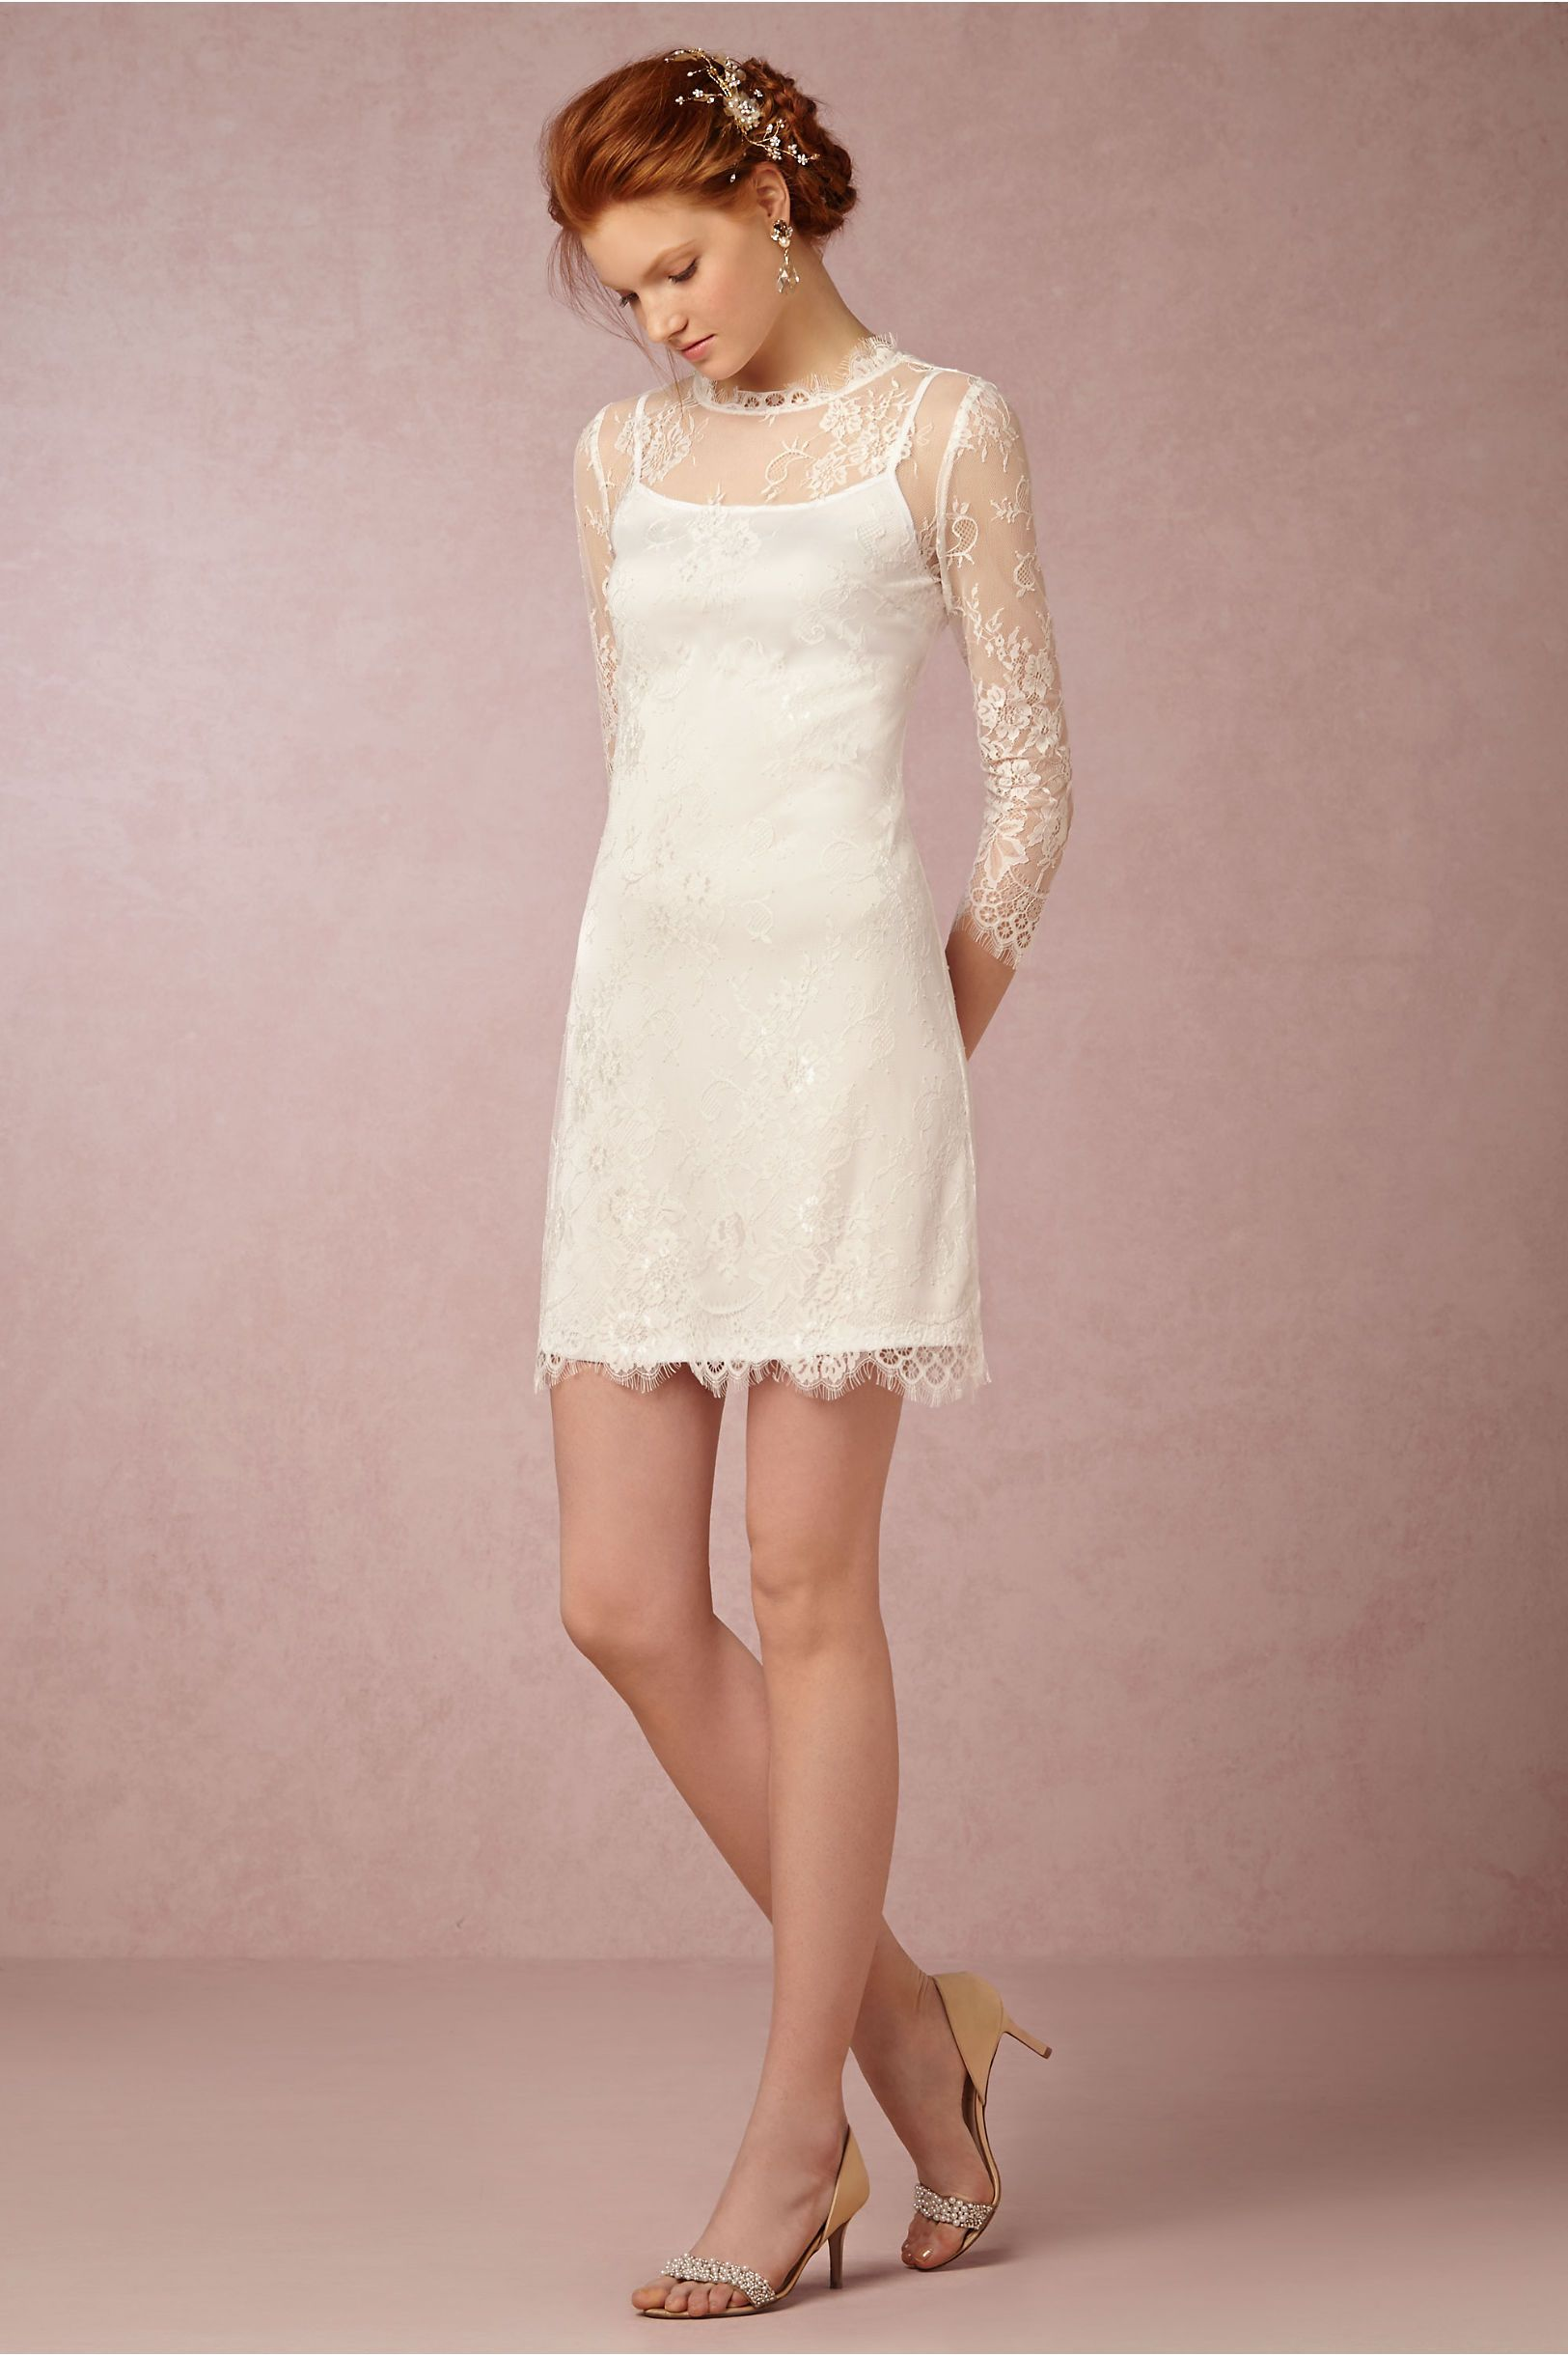 Marley Dress in New at BHLDN | Lace | Pinterest